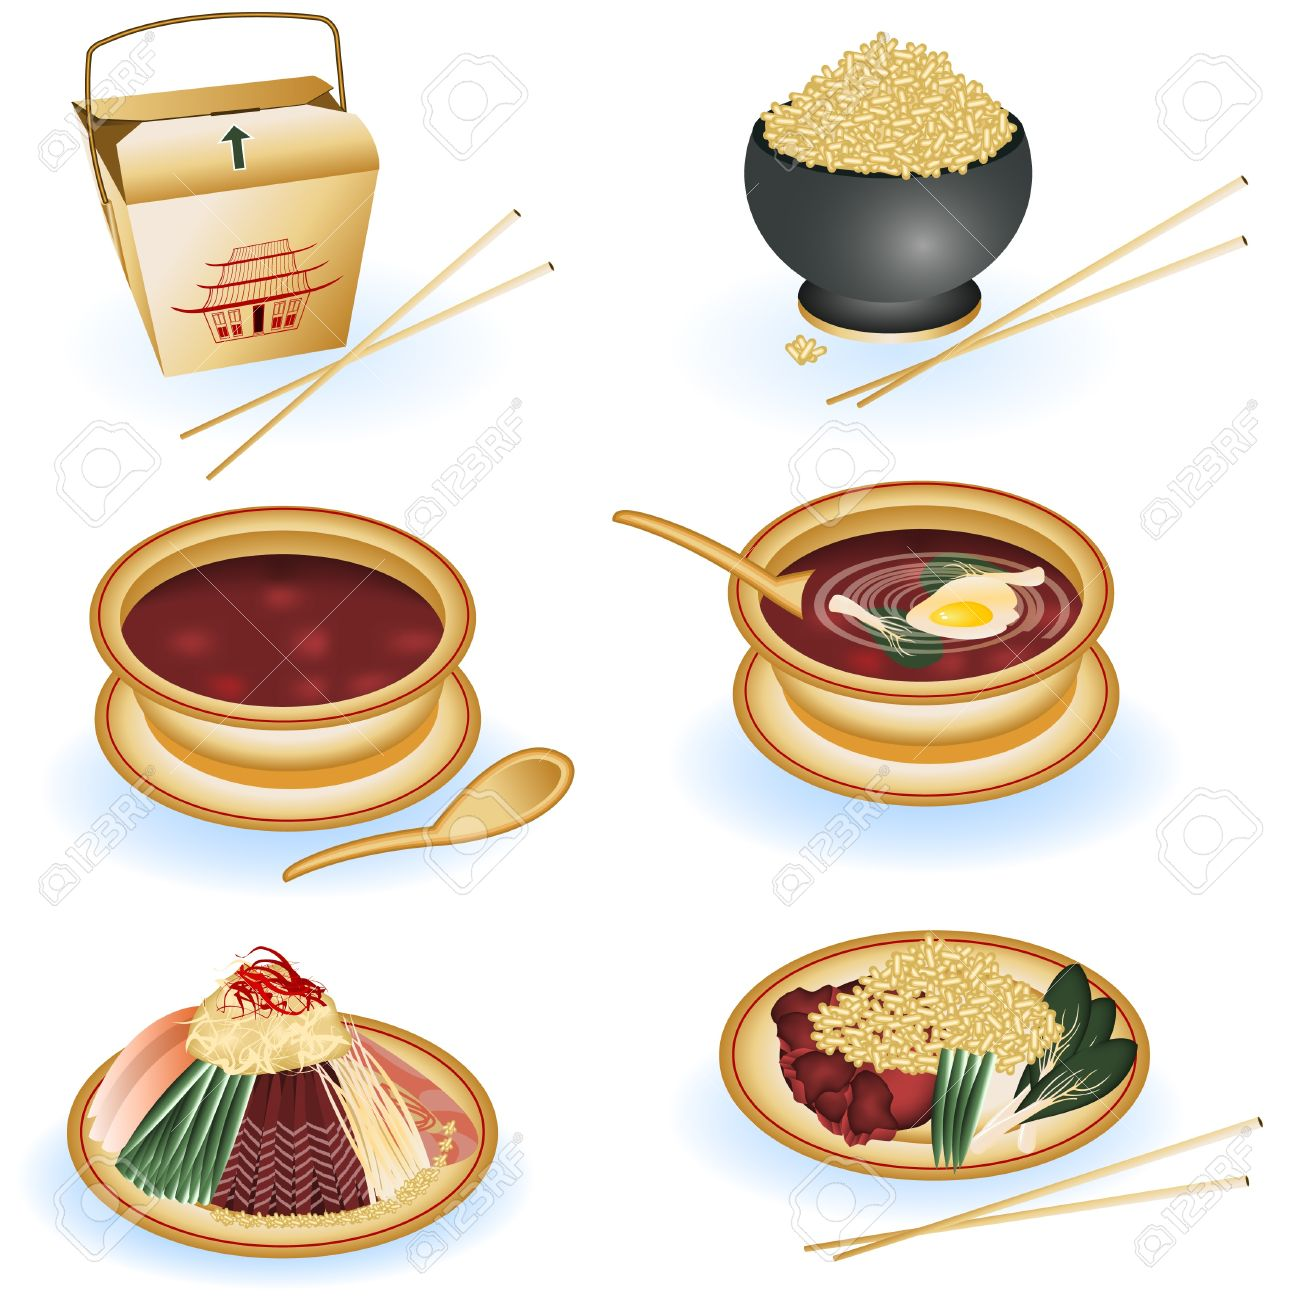 Clipart free food pork bun.